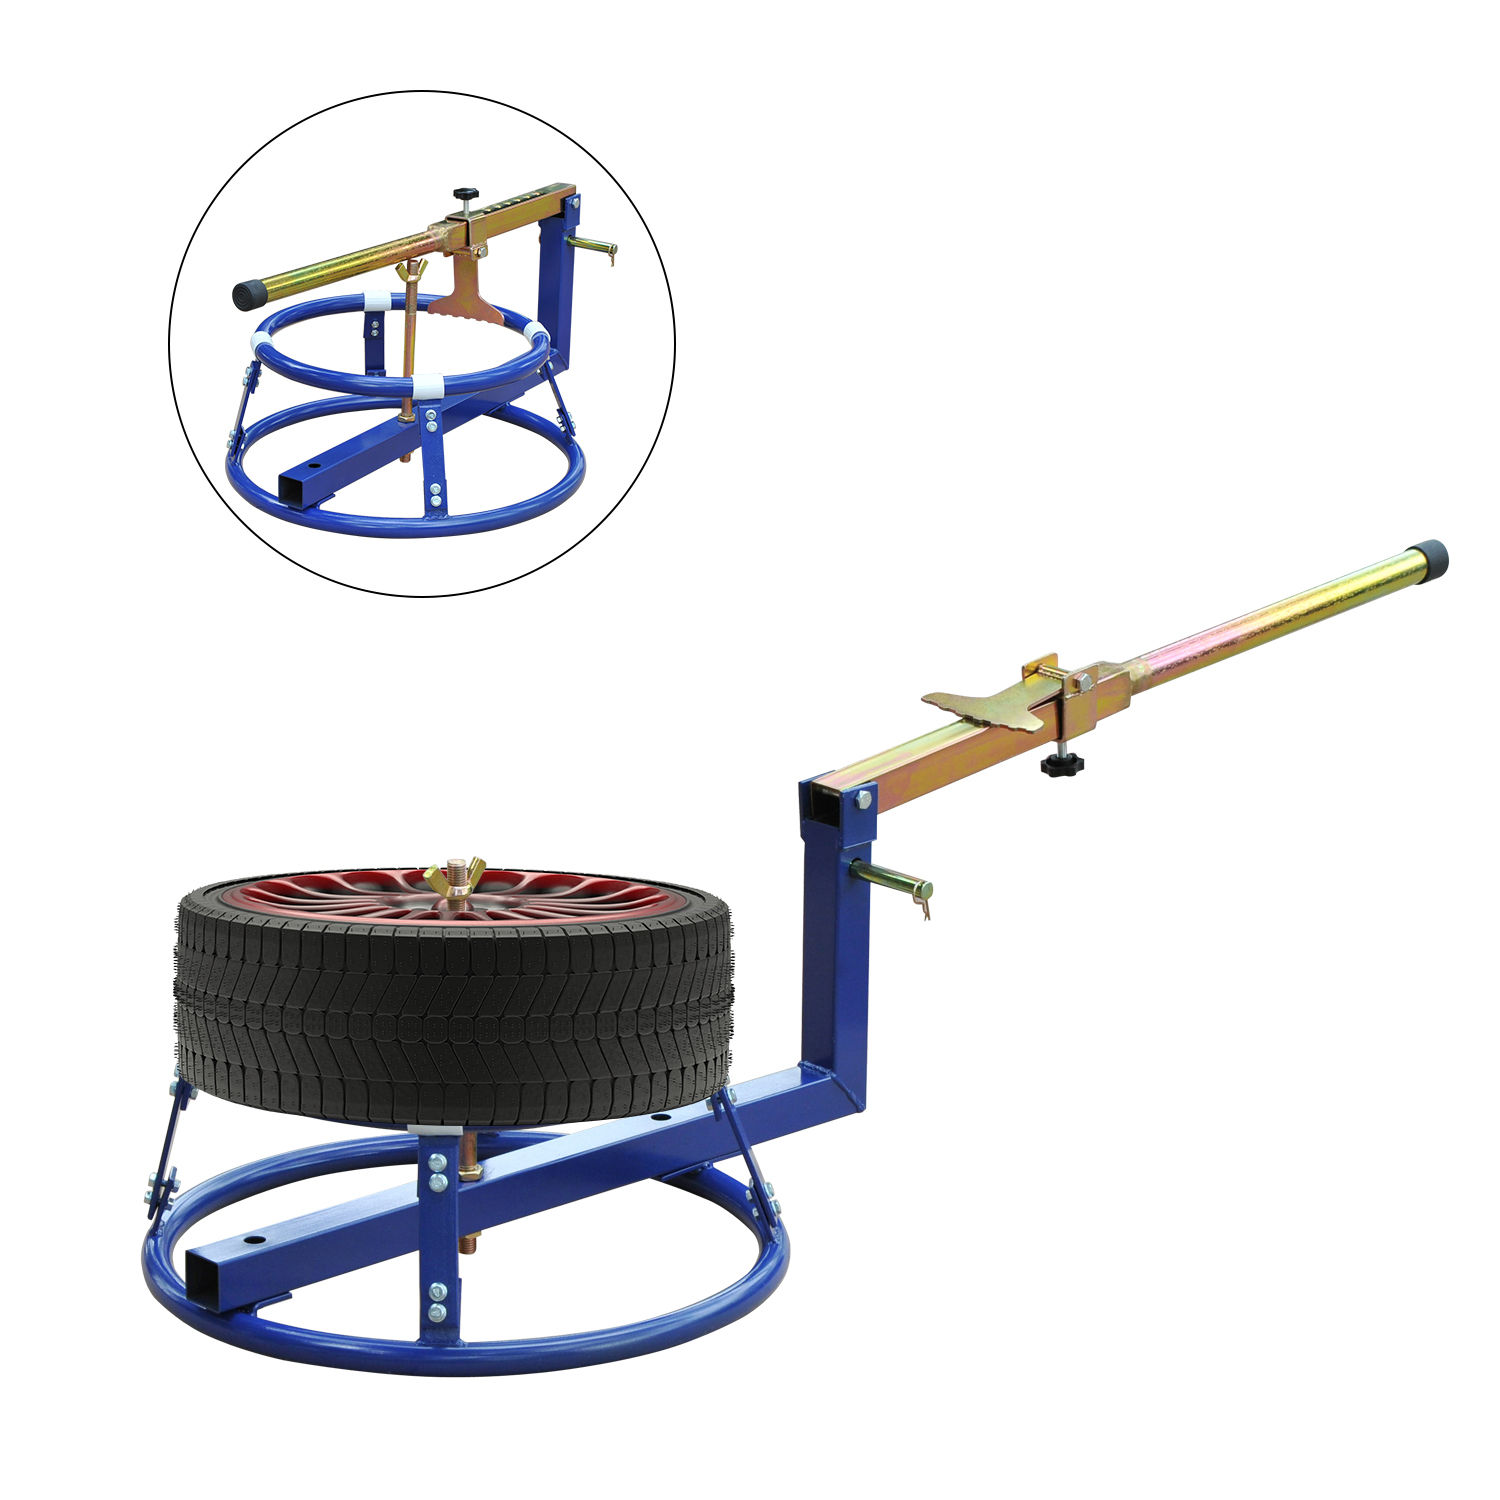 Tusk Adjustable Height Motorcycle Tire Changing Stand-Motorcycle